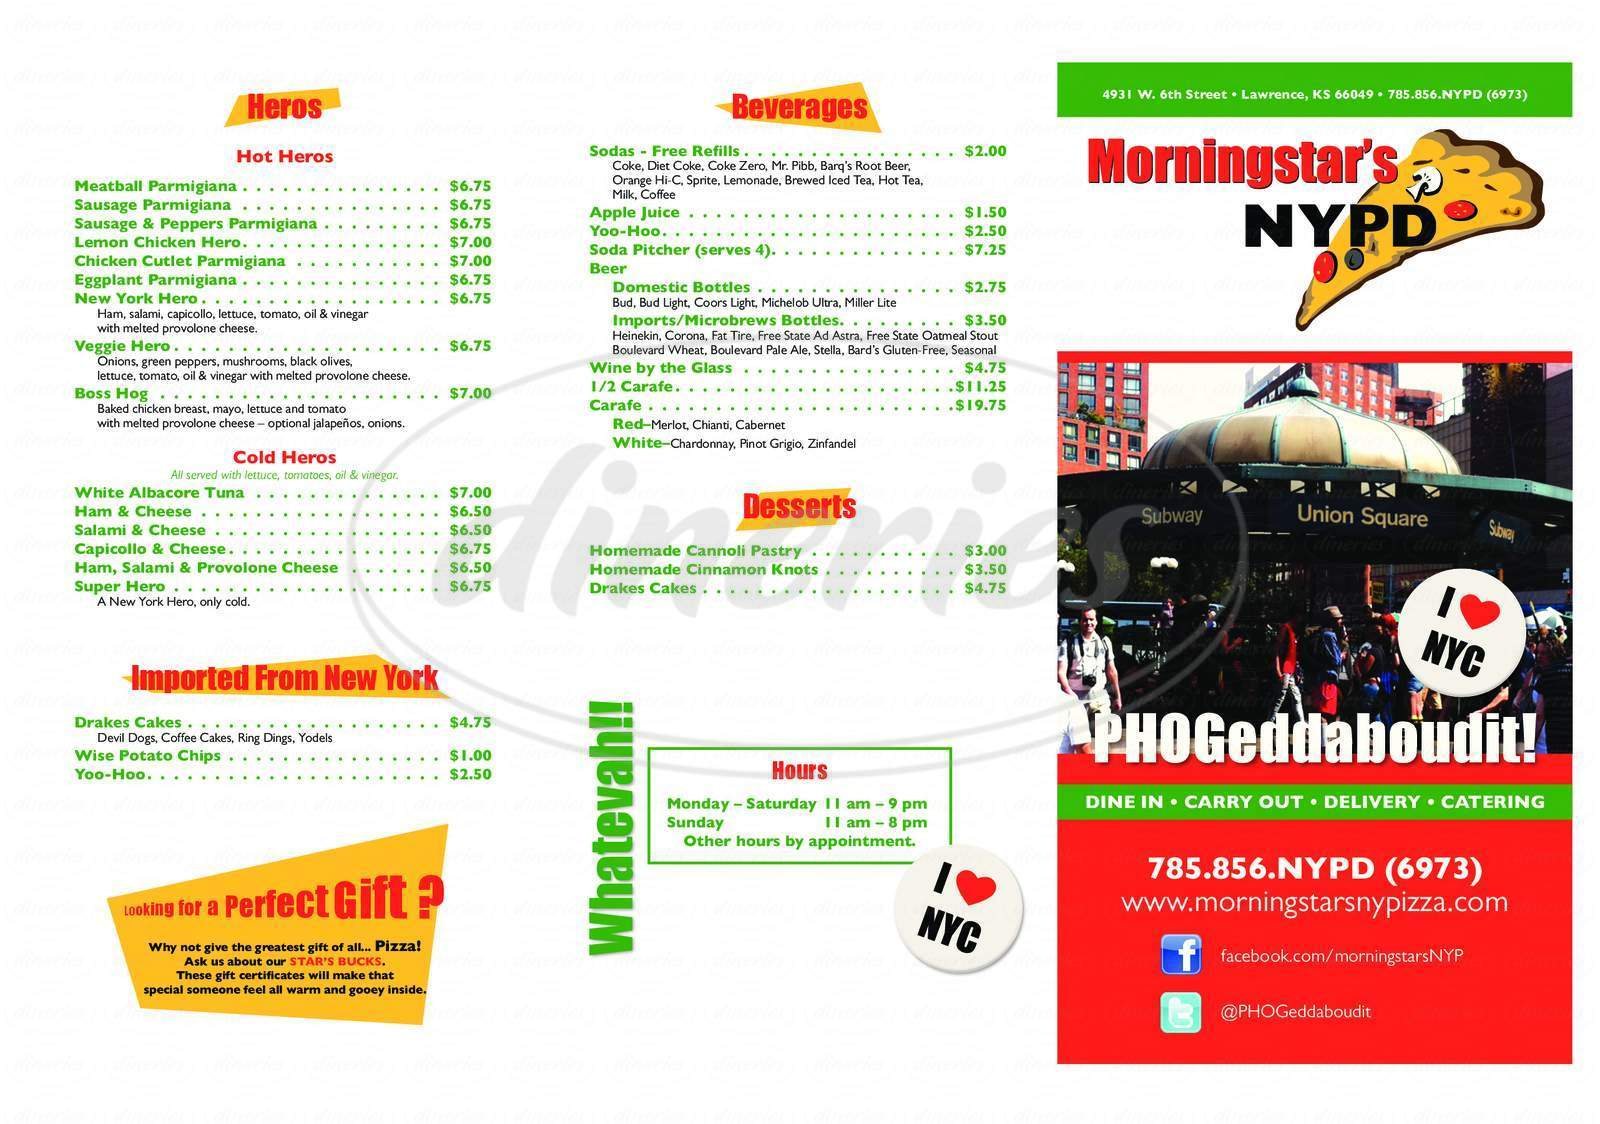 menu for Morningstar's NYPD